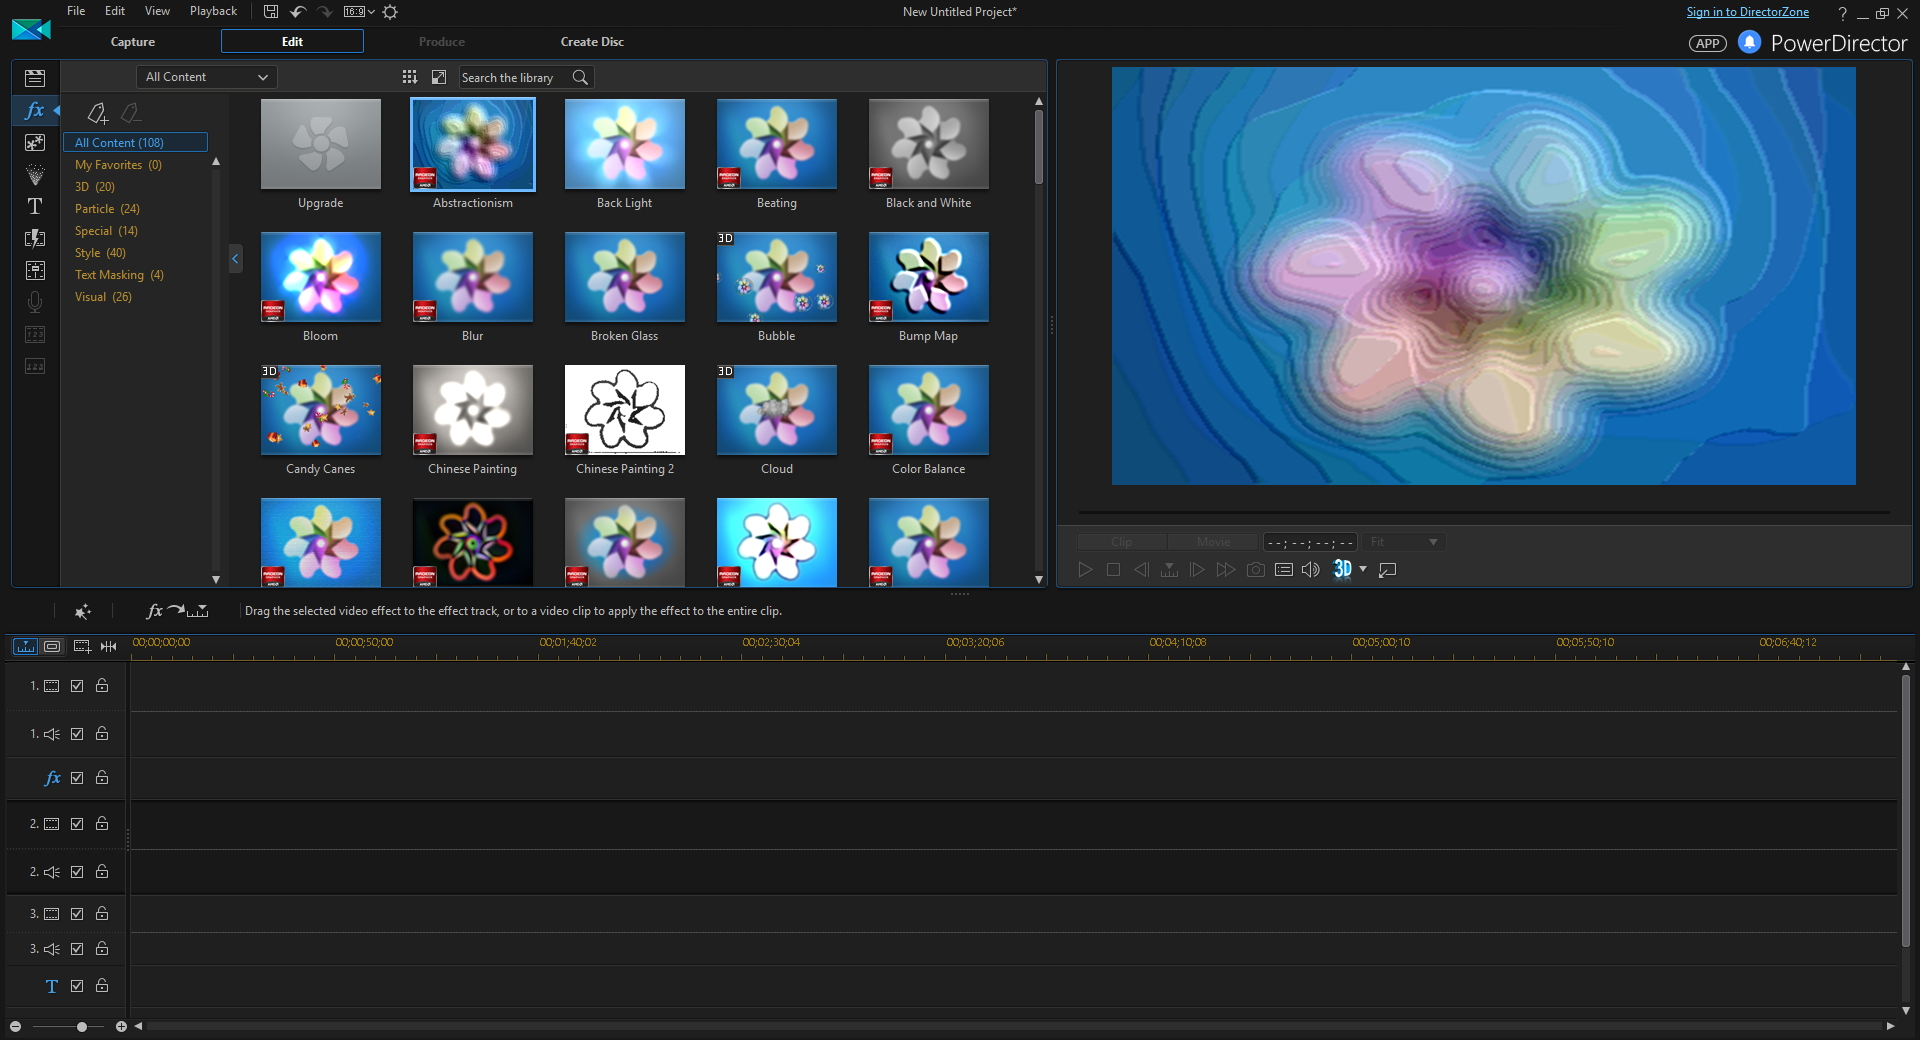 PowerDirector, Video Editing Software Screenshot